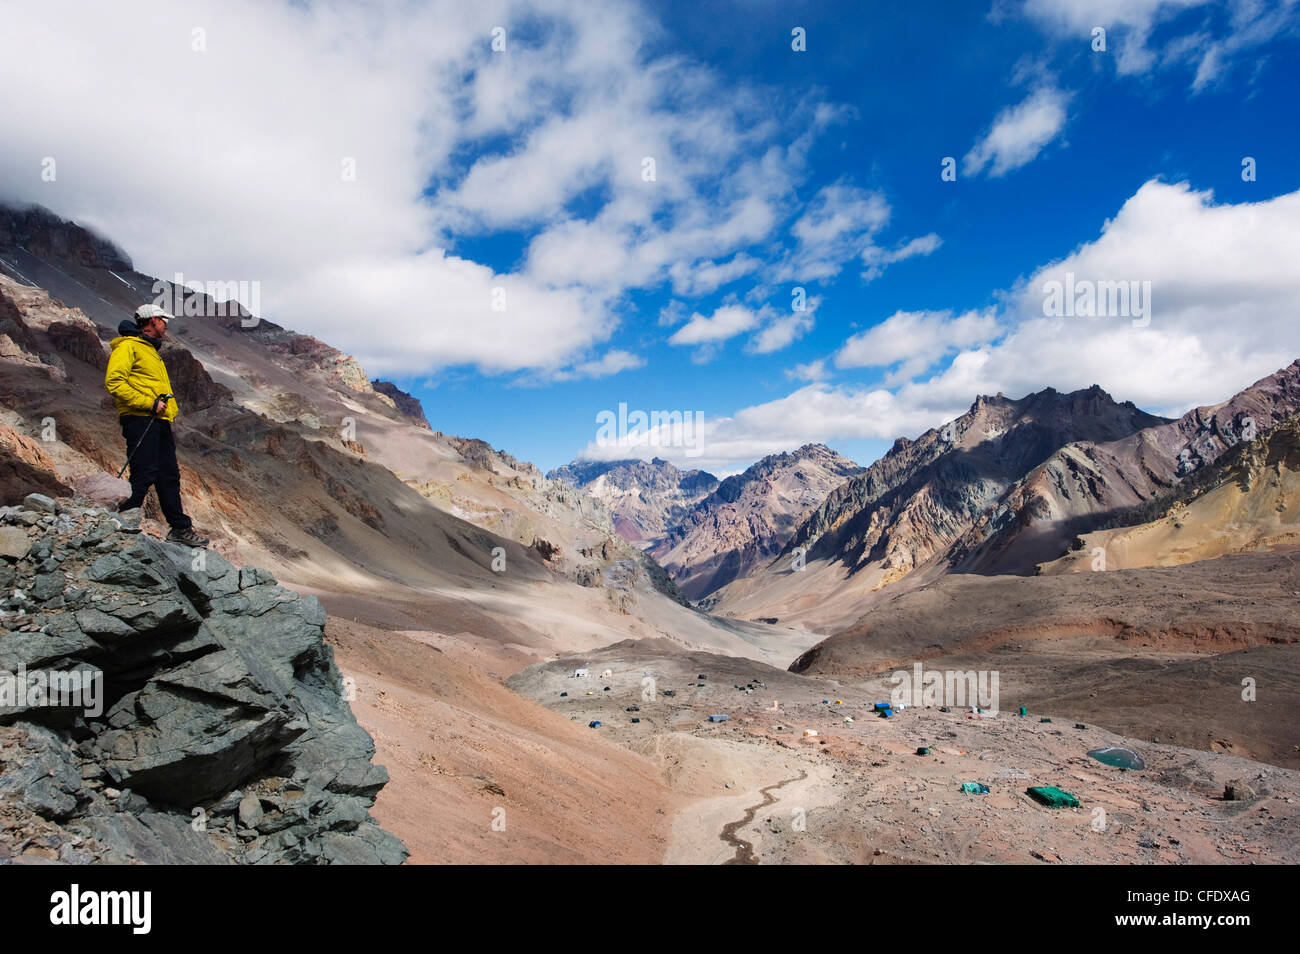 Hiker looking down to base camp, Plaza de Mulas, Aconcagua Provincial Park, Andes mountains, Argentina, South America - Stock Image